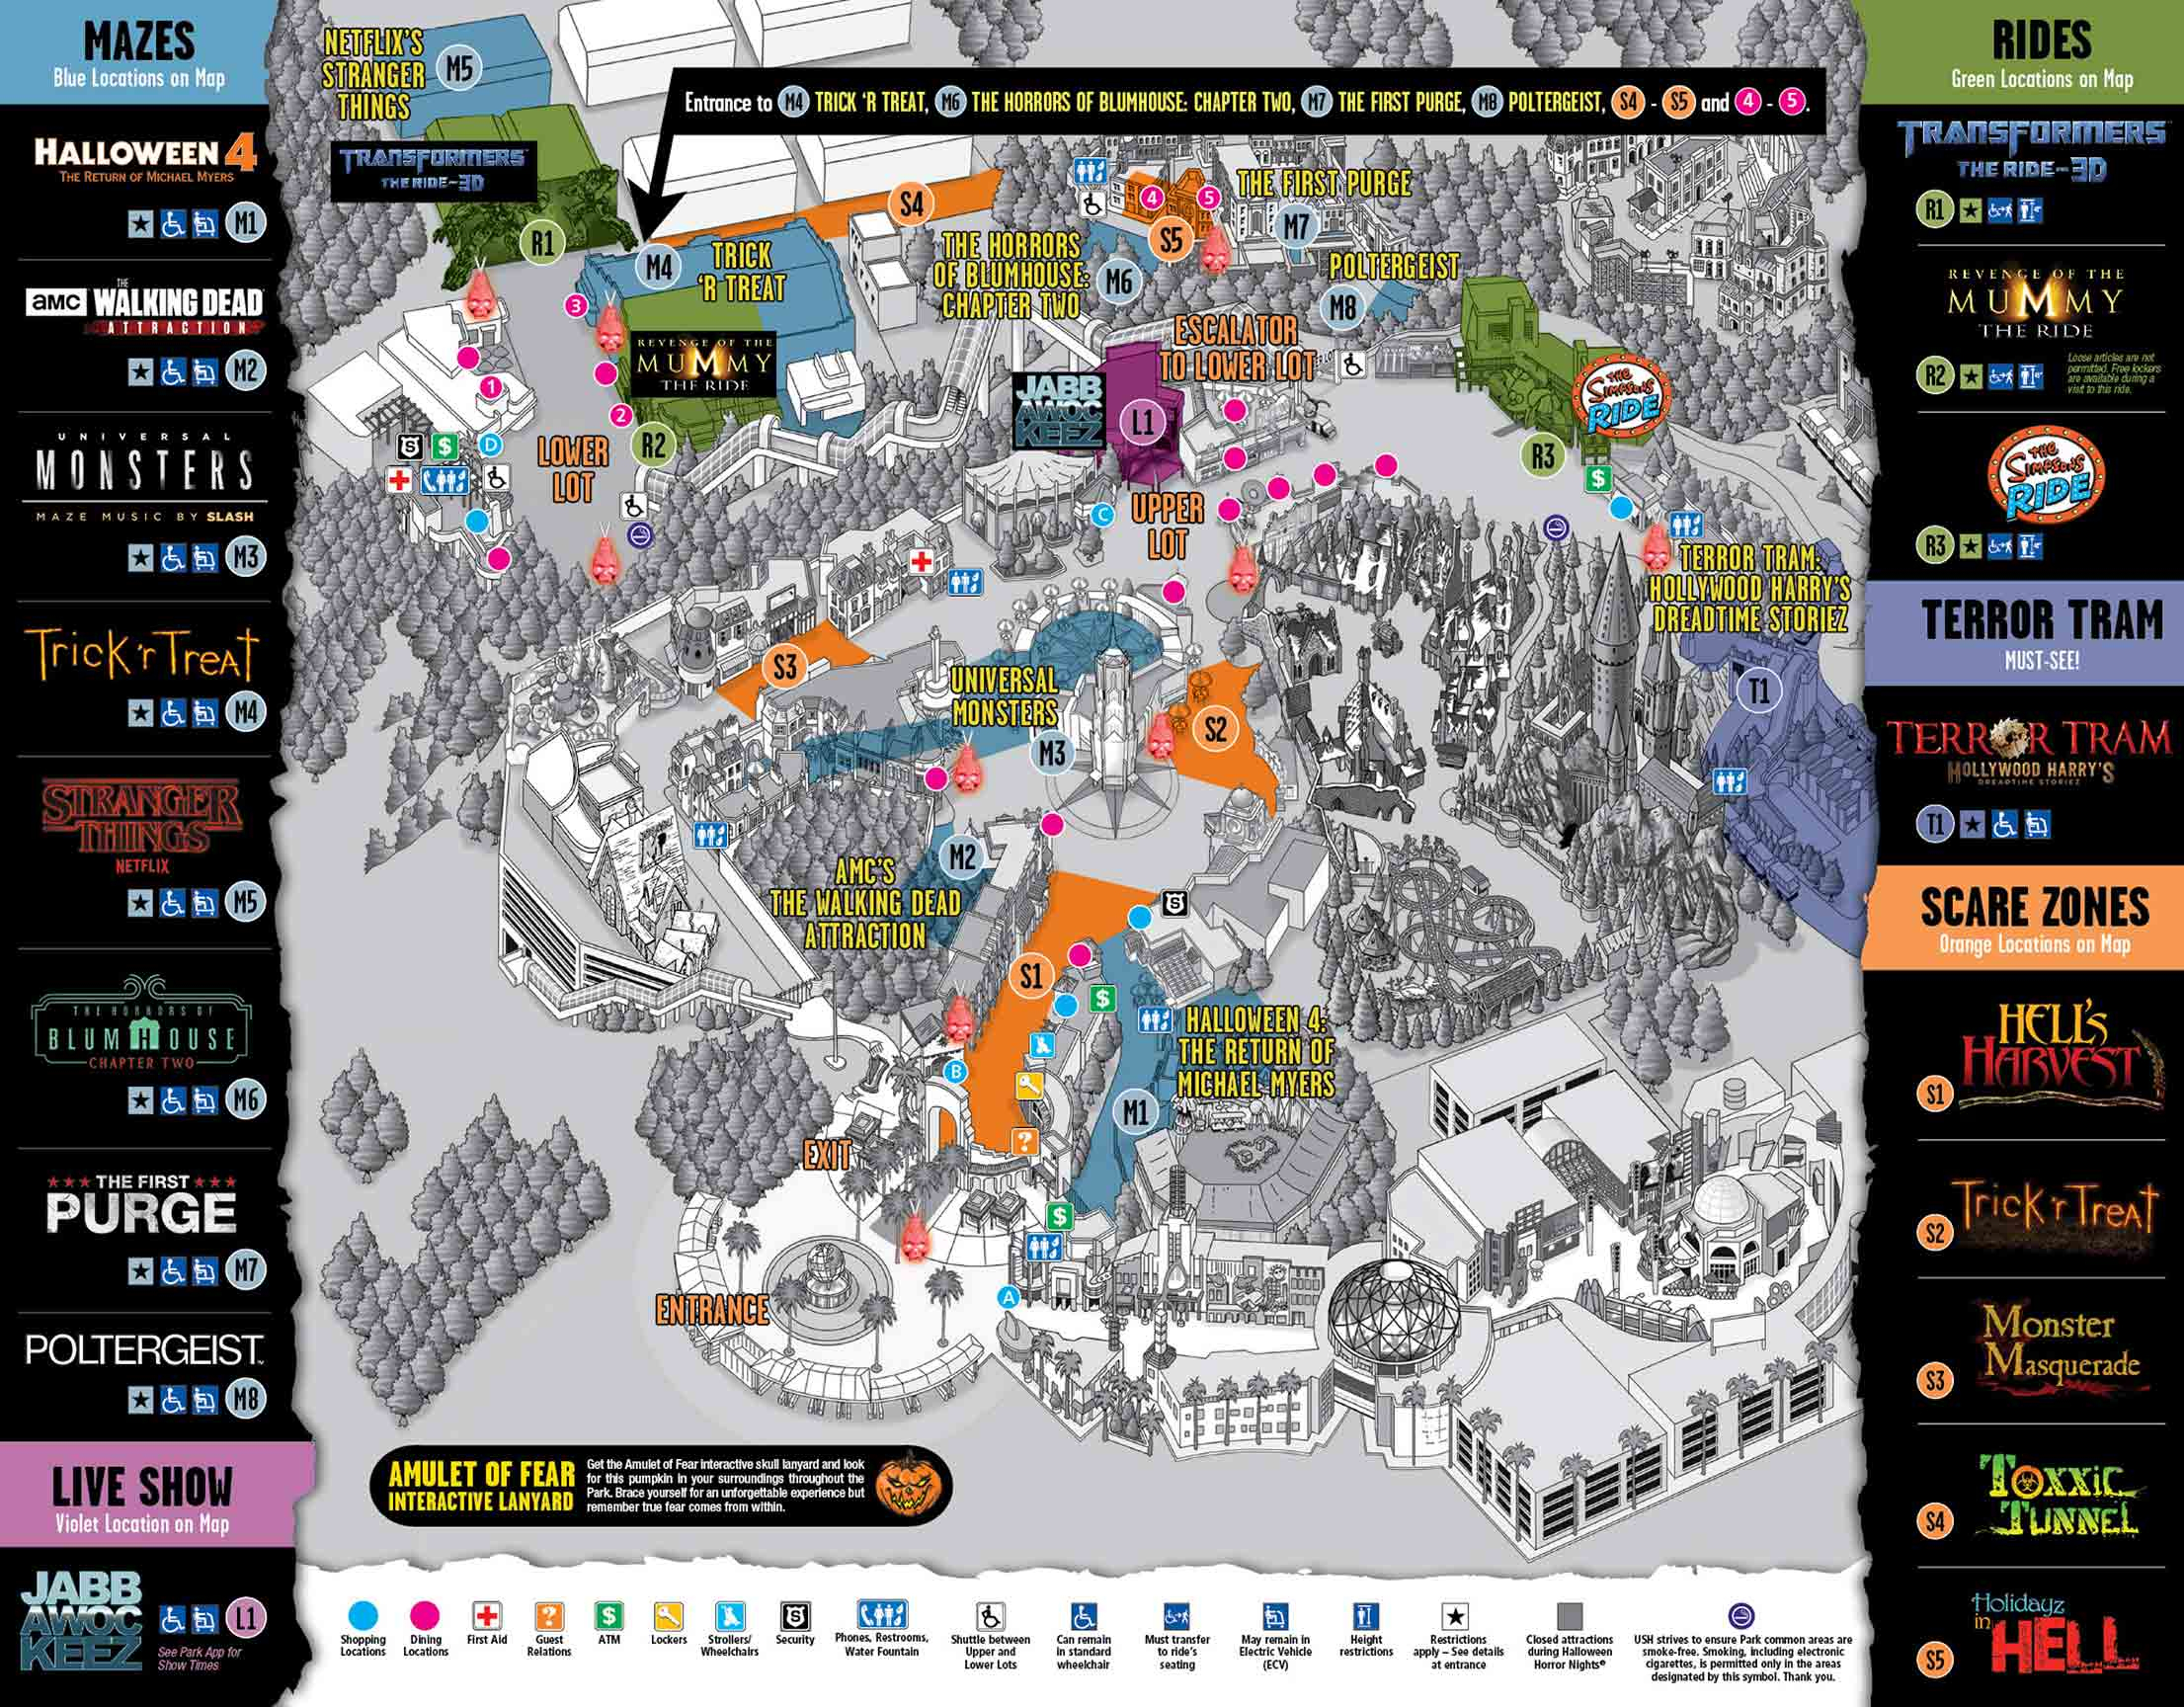 Park Map - Universal Studios Hollywood: Halloween Horror Nights - Universal Studios Map California 2018